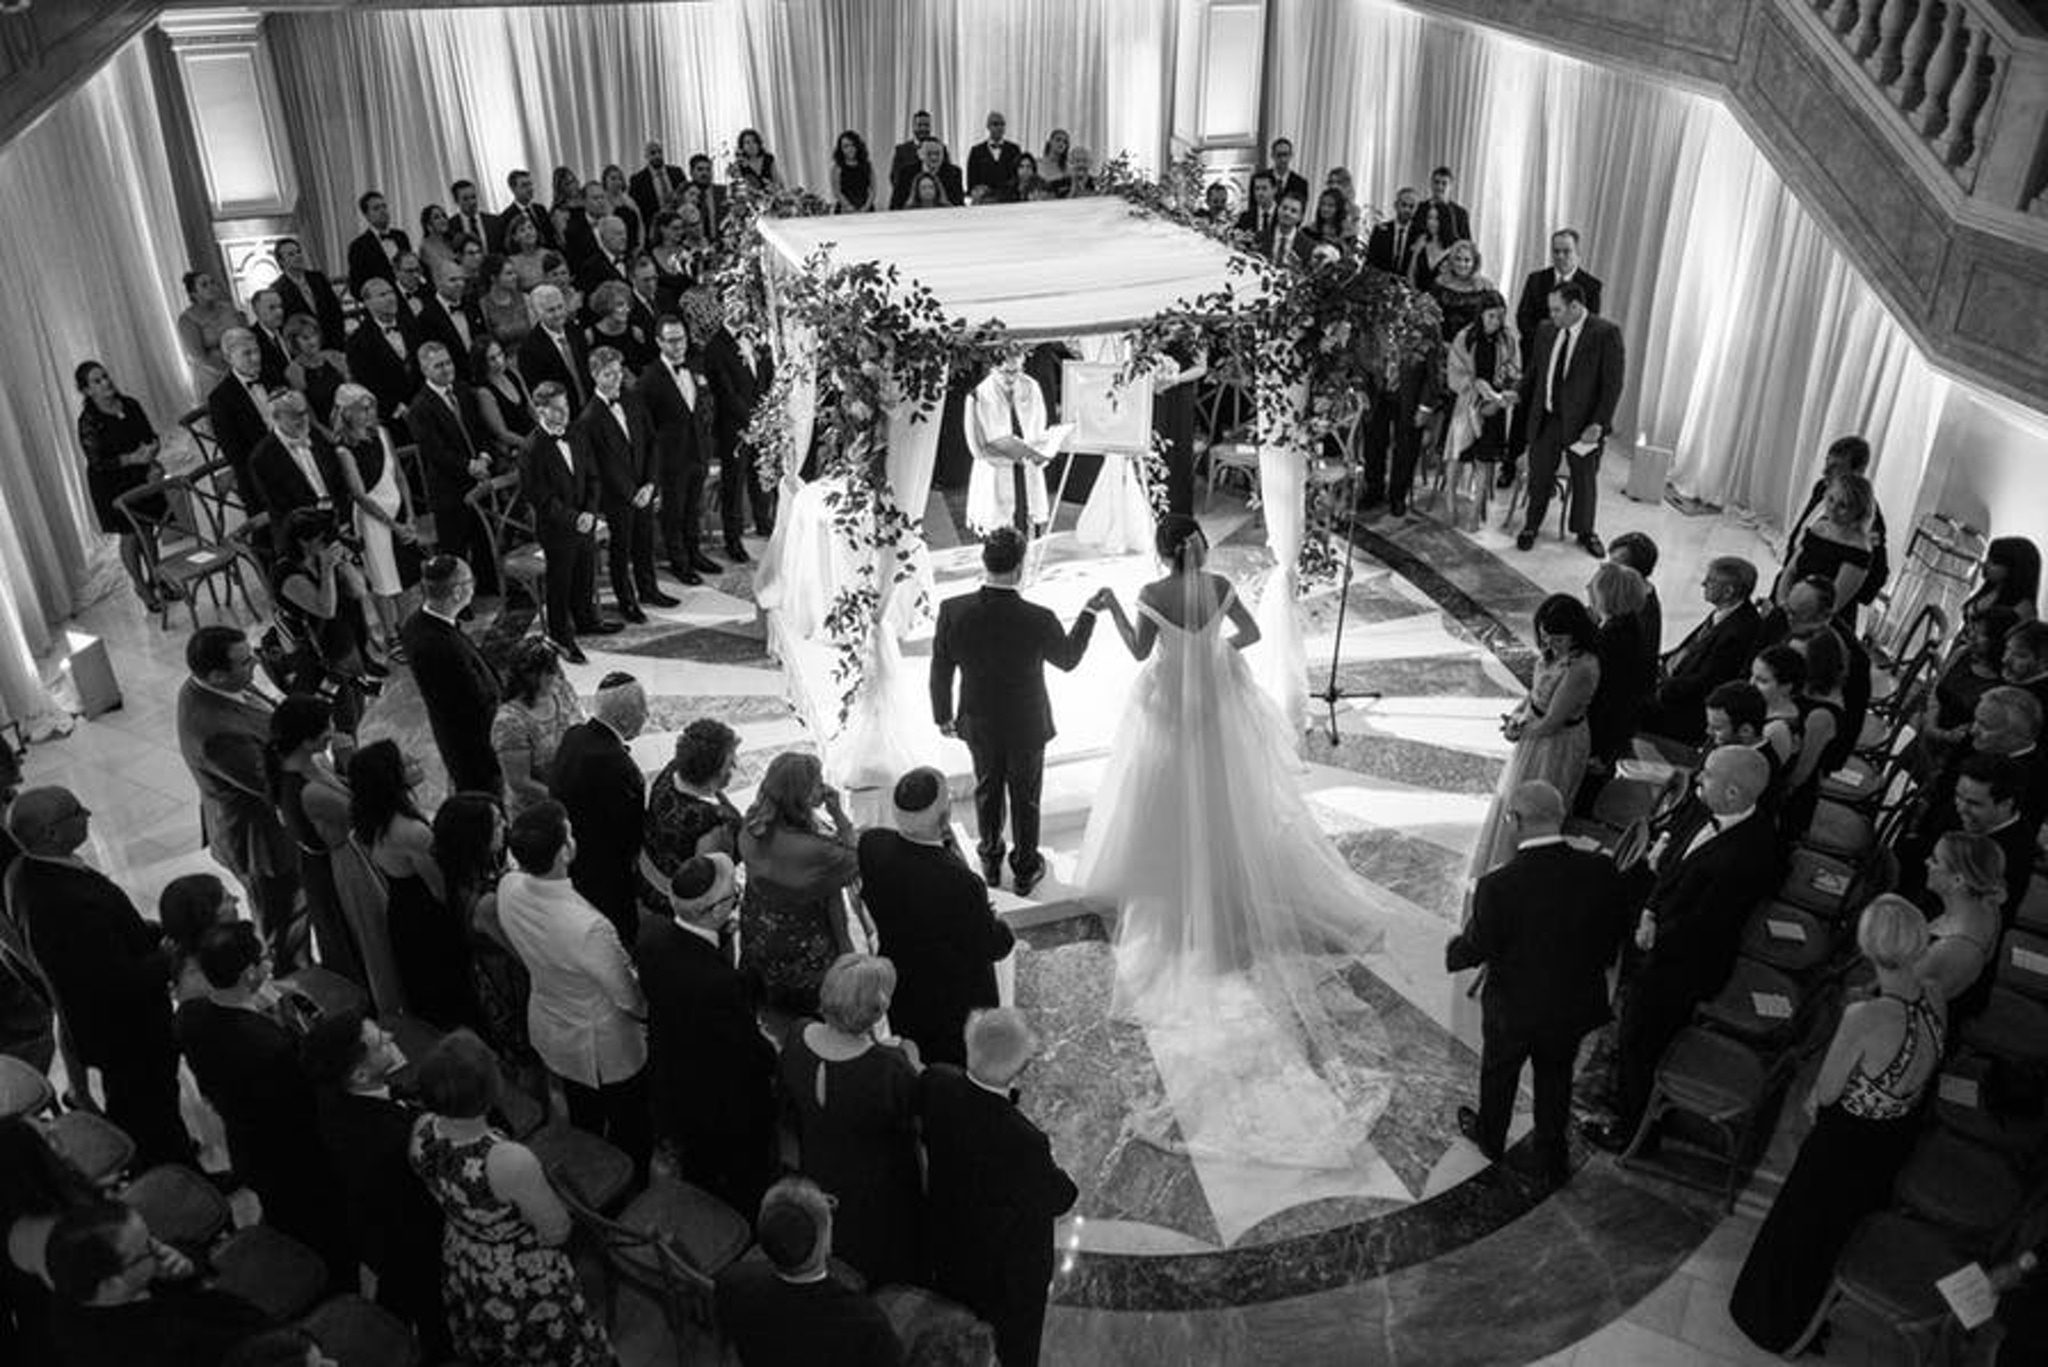 marble starburst floor design is perfect for wedding ceremony at national museum of women in the arts